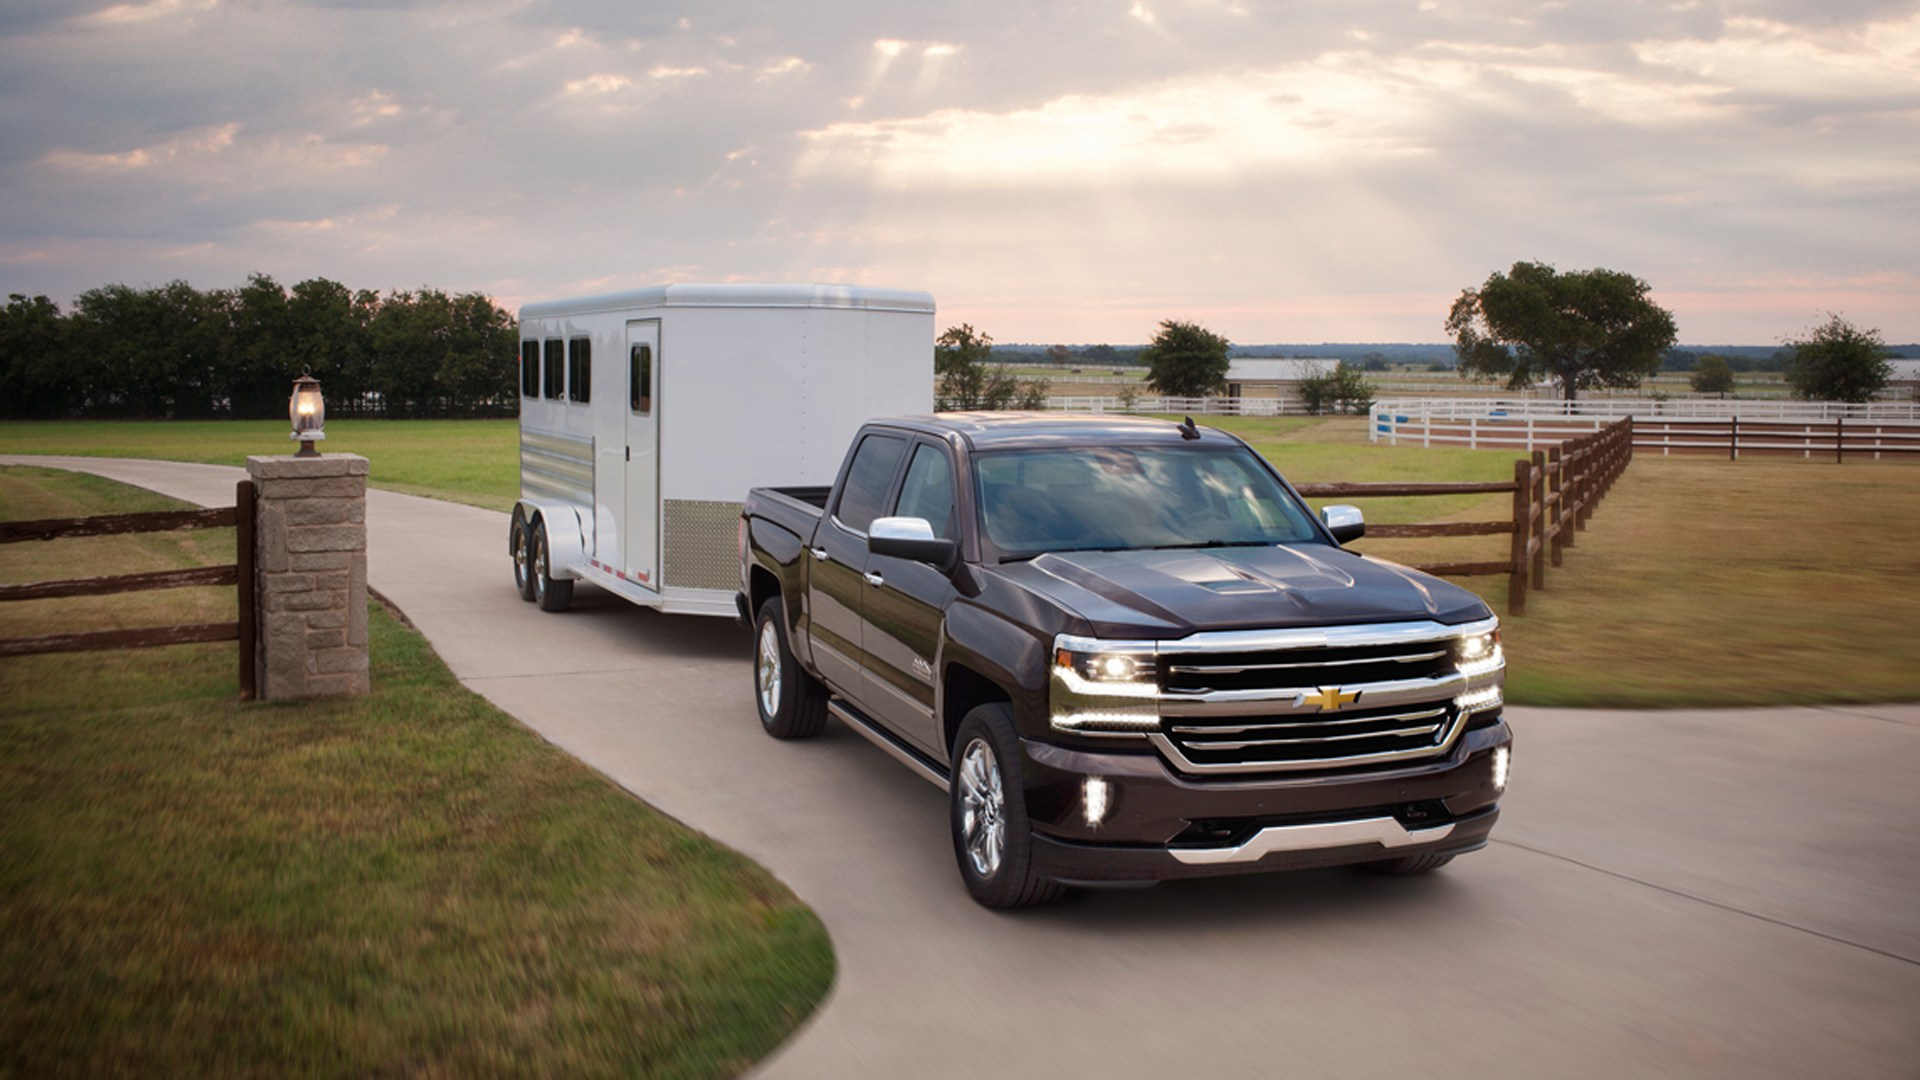 Iowas 2015 Top Selling Vehicle Is The Chevy Silverado High Country 2016 Best In Iowa